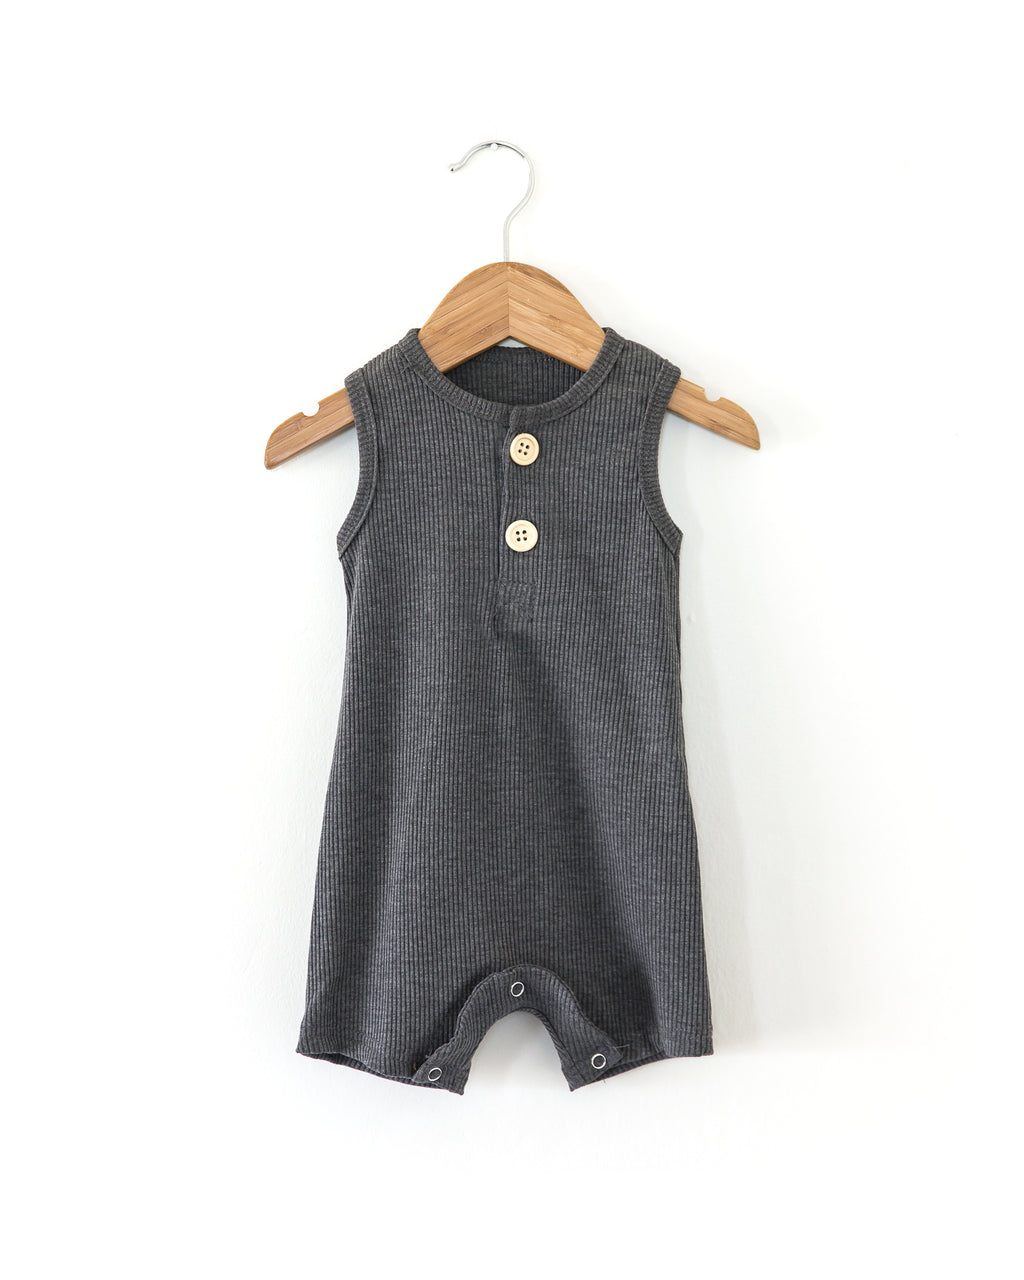 Miles Romper in Charcoal - Reverie Threads